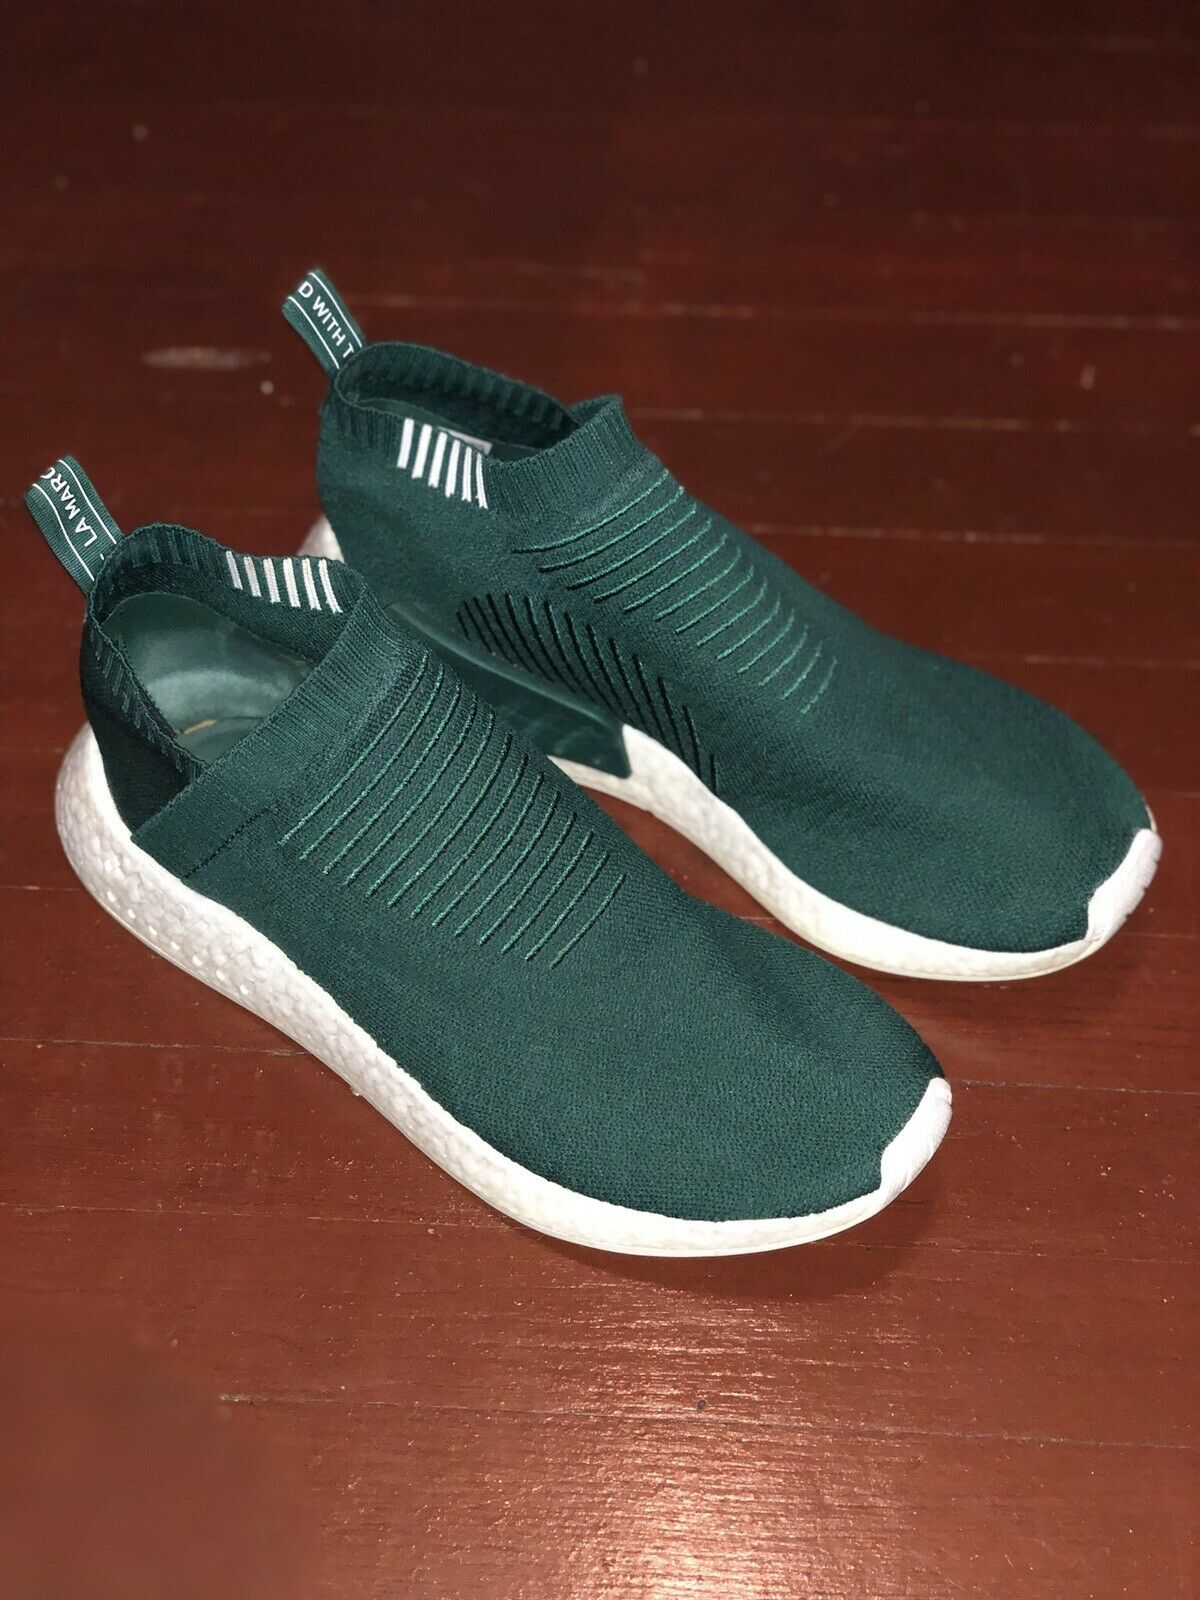 Adidas SNS nmd_cs2 Collegiate Green Size 13 Used